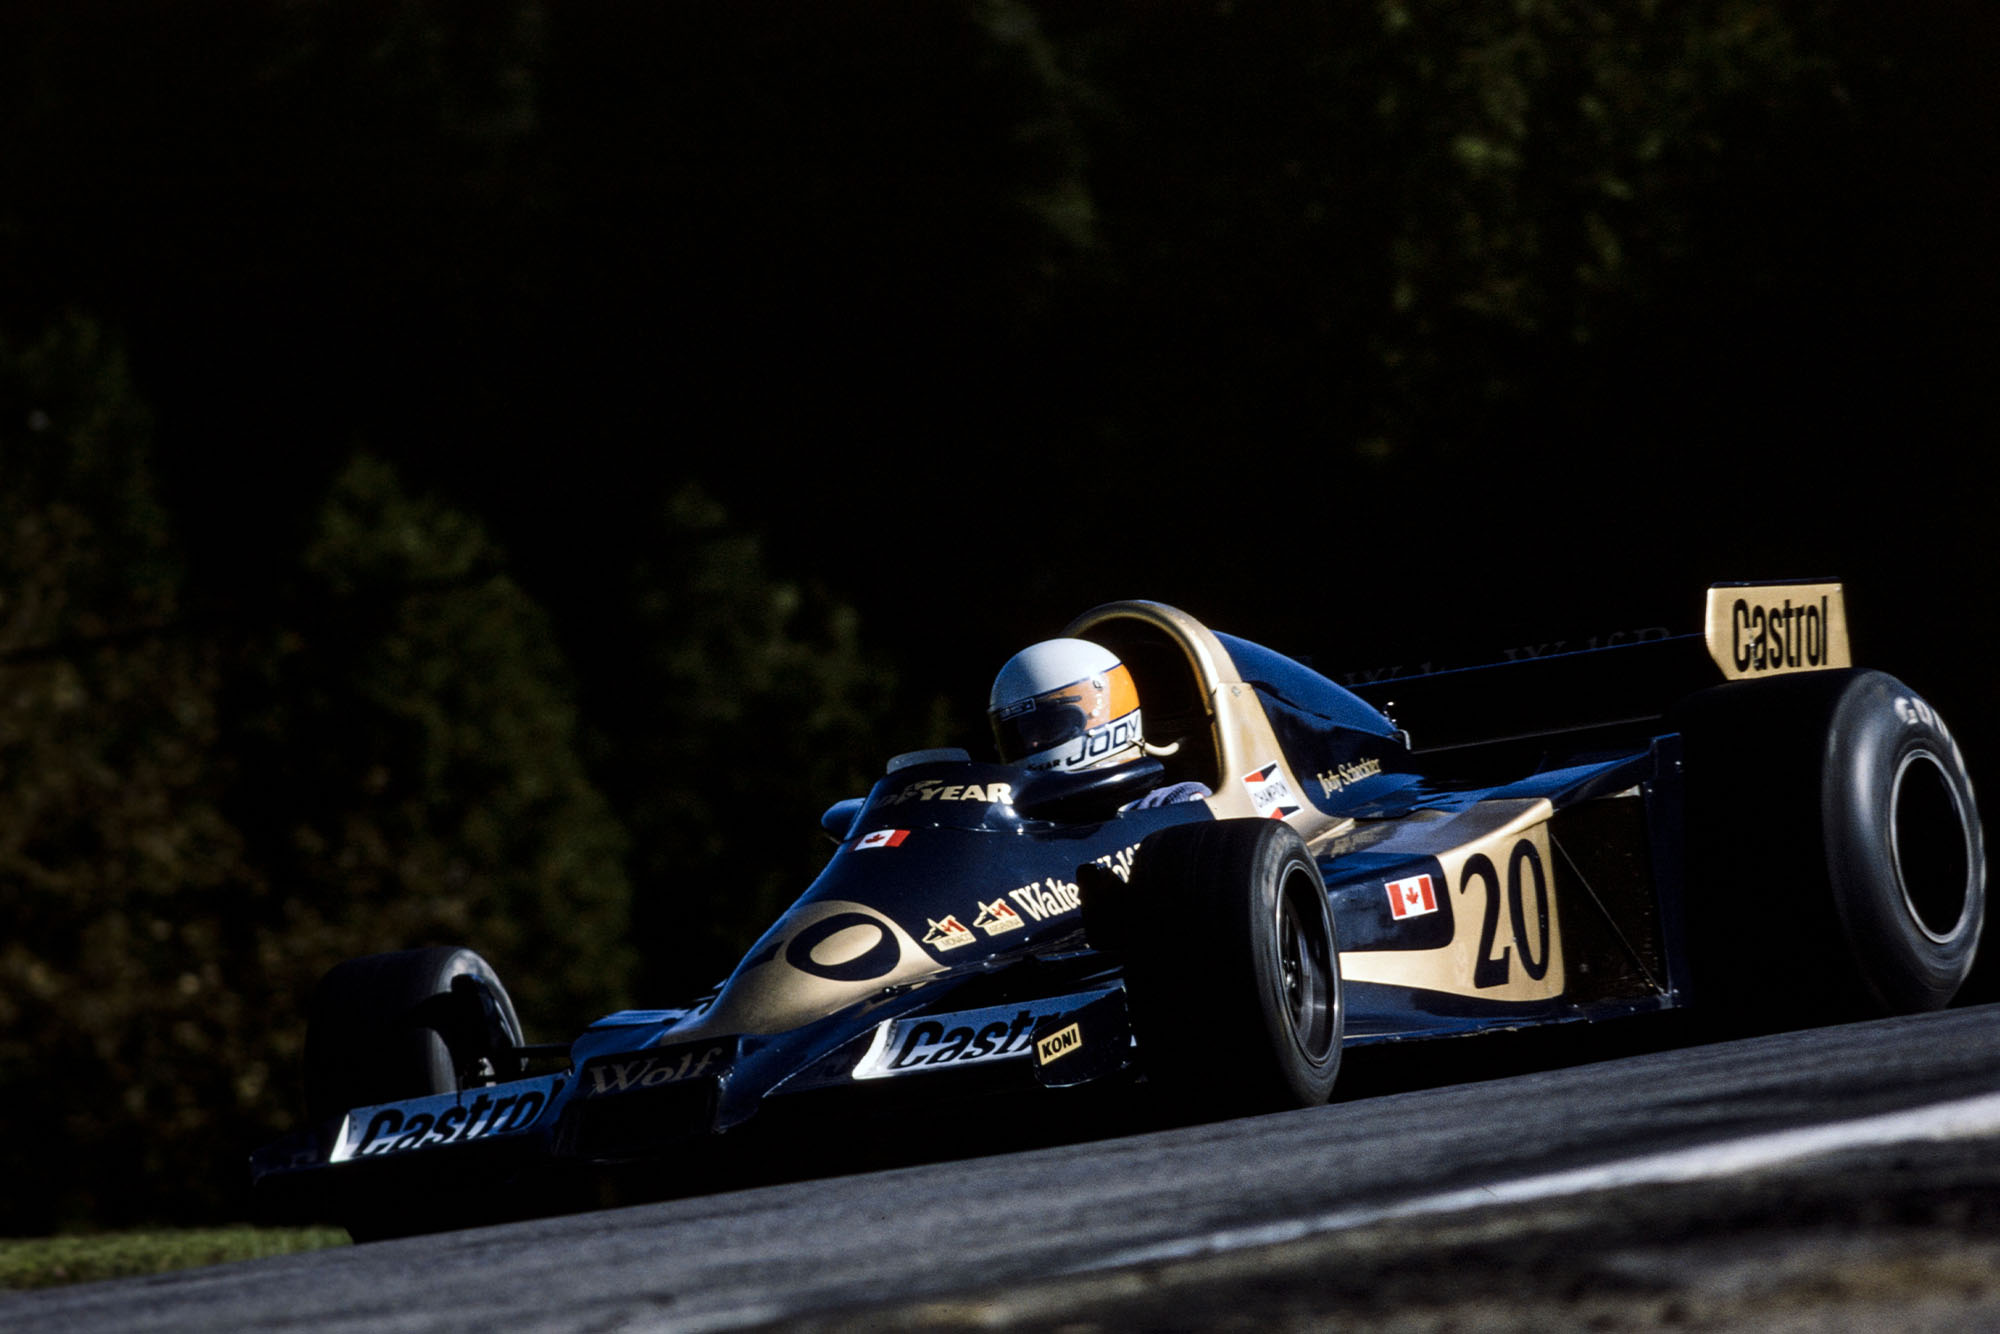 Jody Scheckter (Wold) at the 1977 Canadian Grand Prix, Mosport Park.